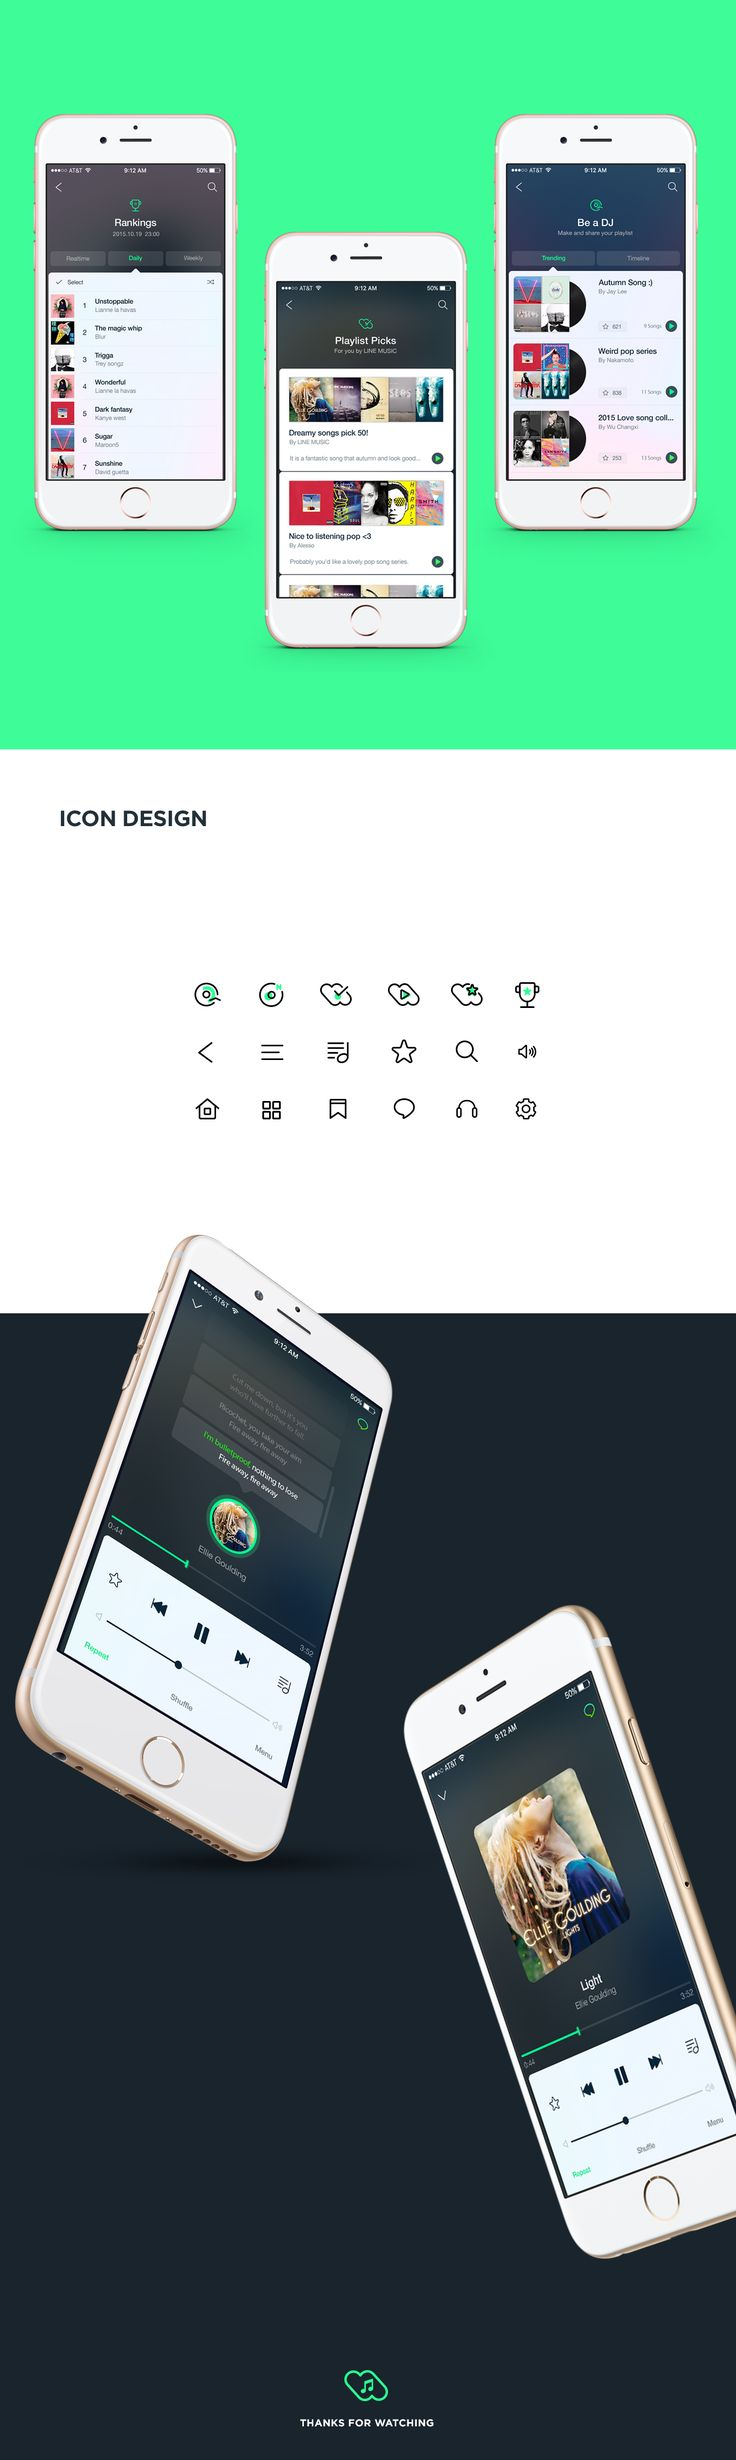 LINE MUSIC redesign project by jay lee.